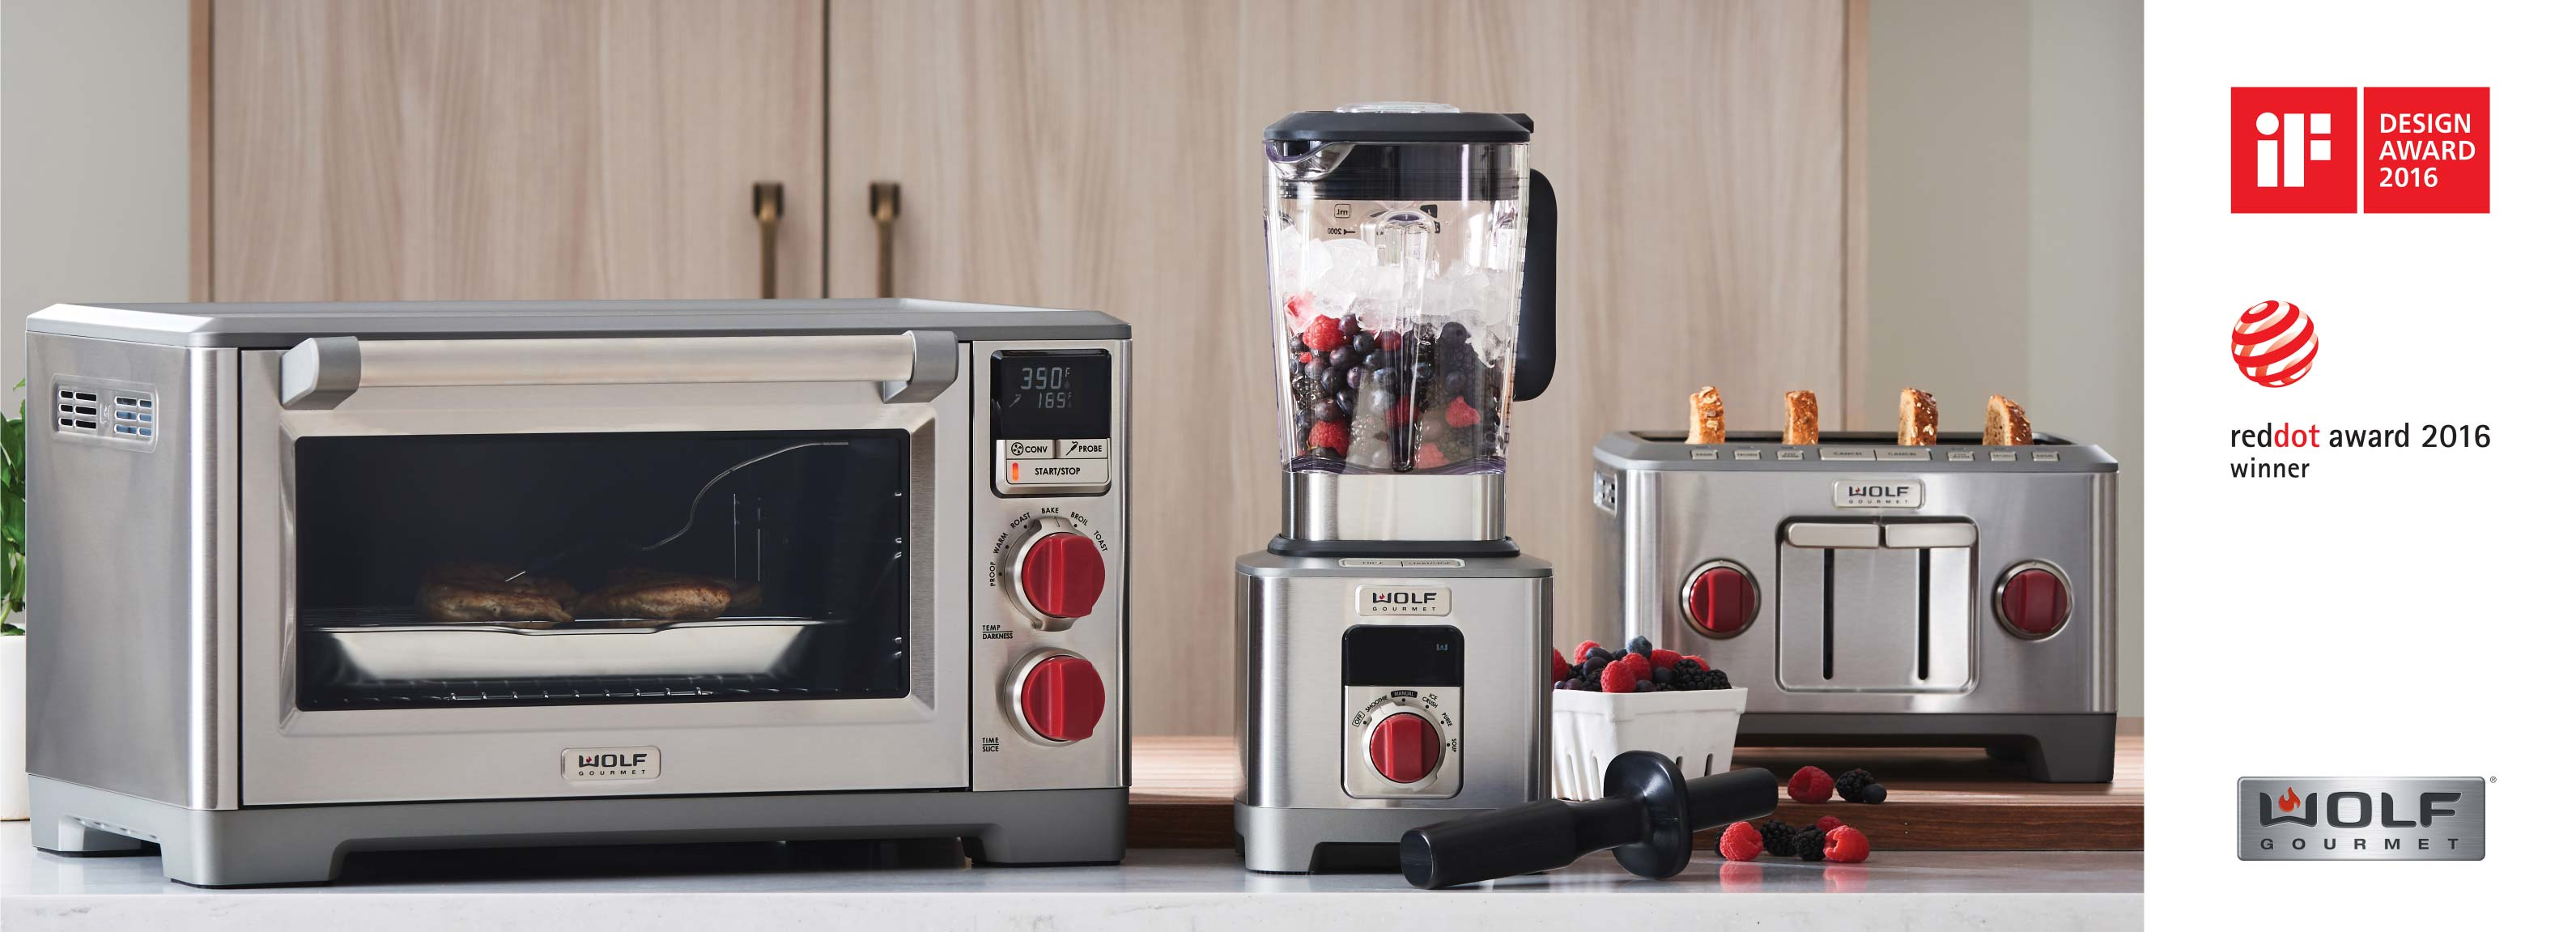 Wolf Gourmet Countertop Appliances Recognized for Design Excellence